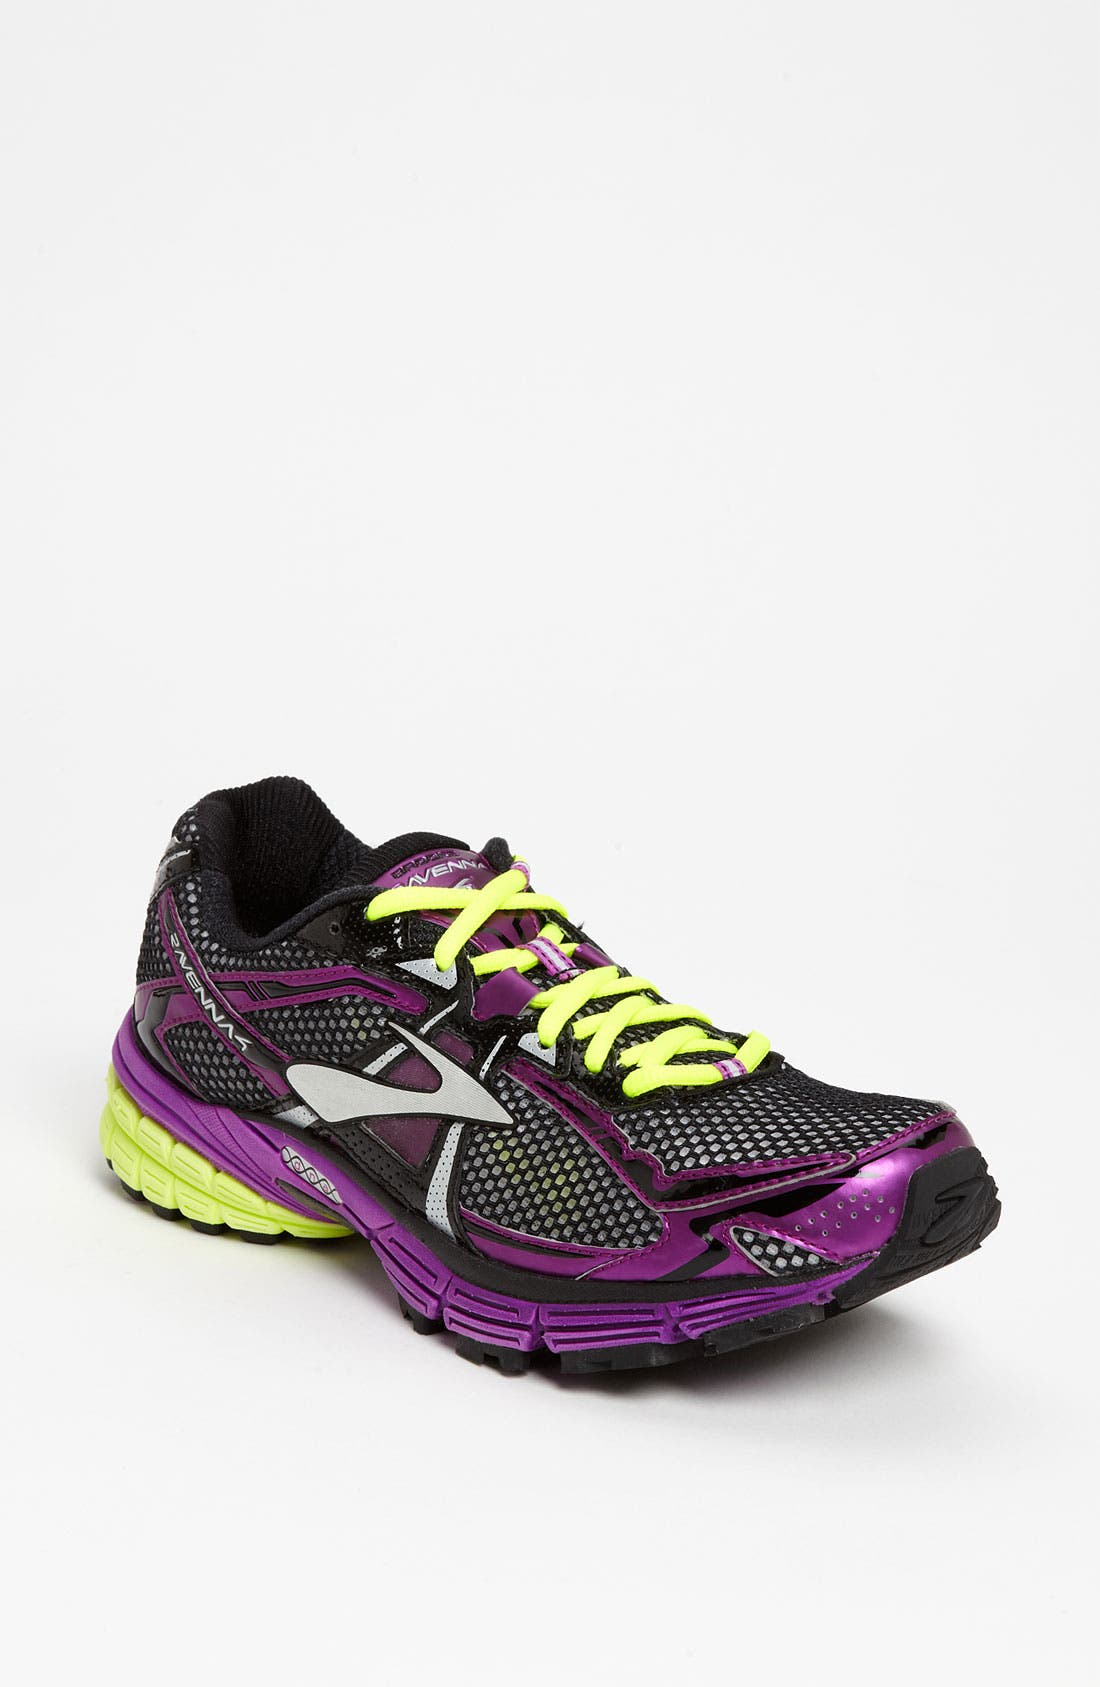 Alternate Image 1 Selected - Brooks 'Ravenna 4' Running Shoe (Women)(Regular Retail Price: $109.95)